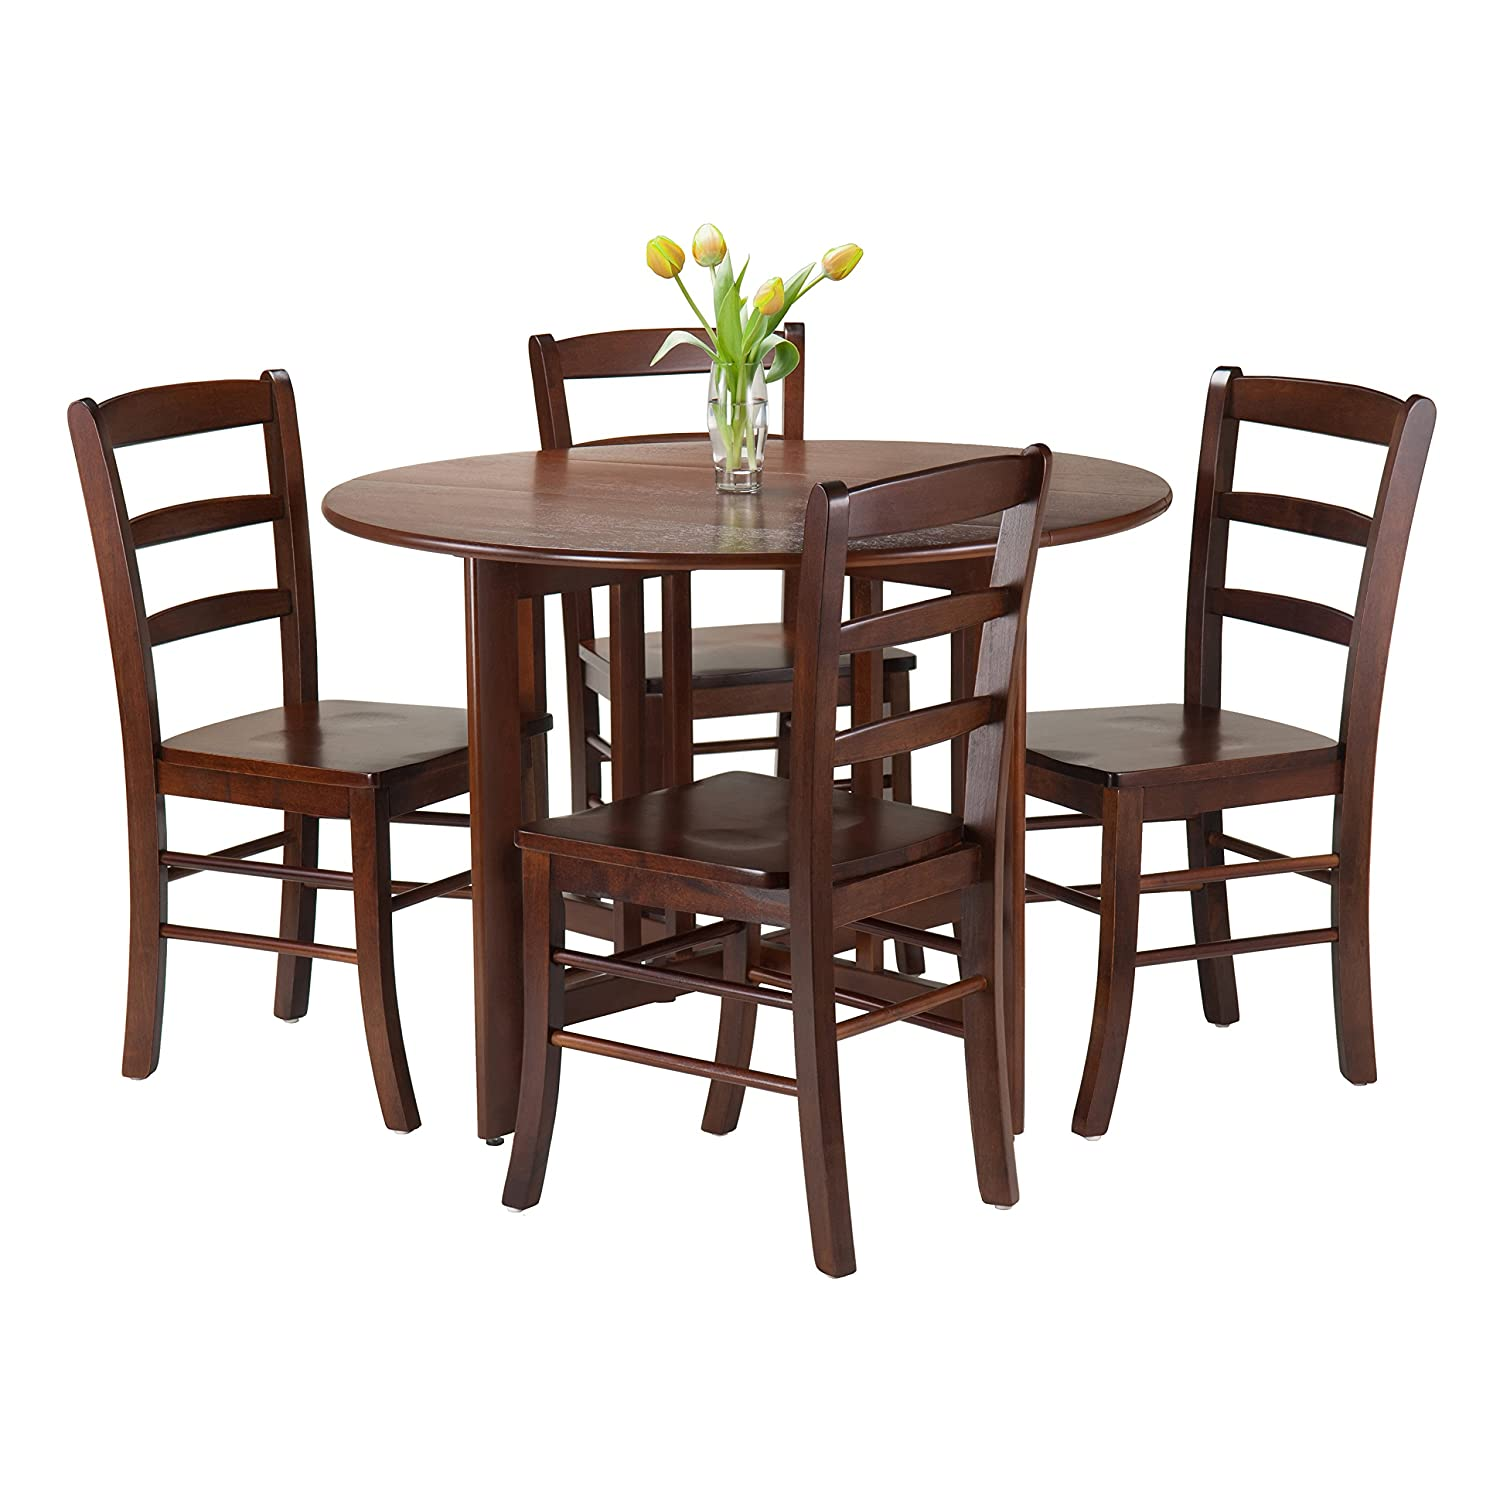 Amazon Winsome 5 Piece Alamo Round Drop Leaf Table with 4